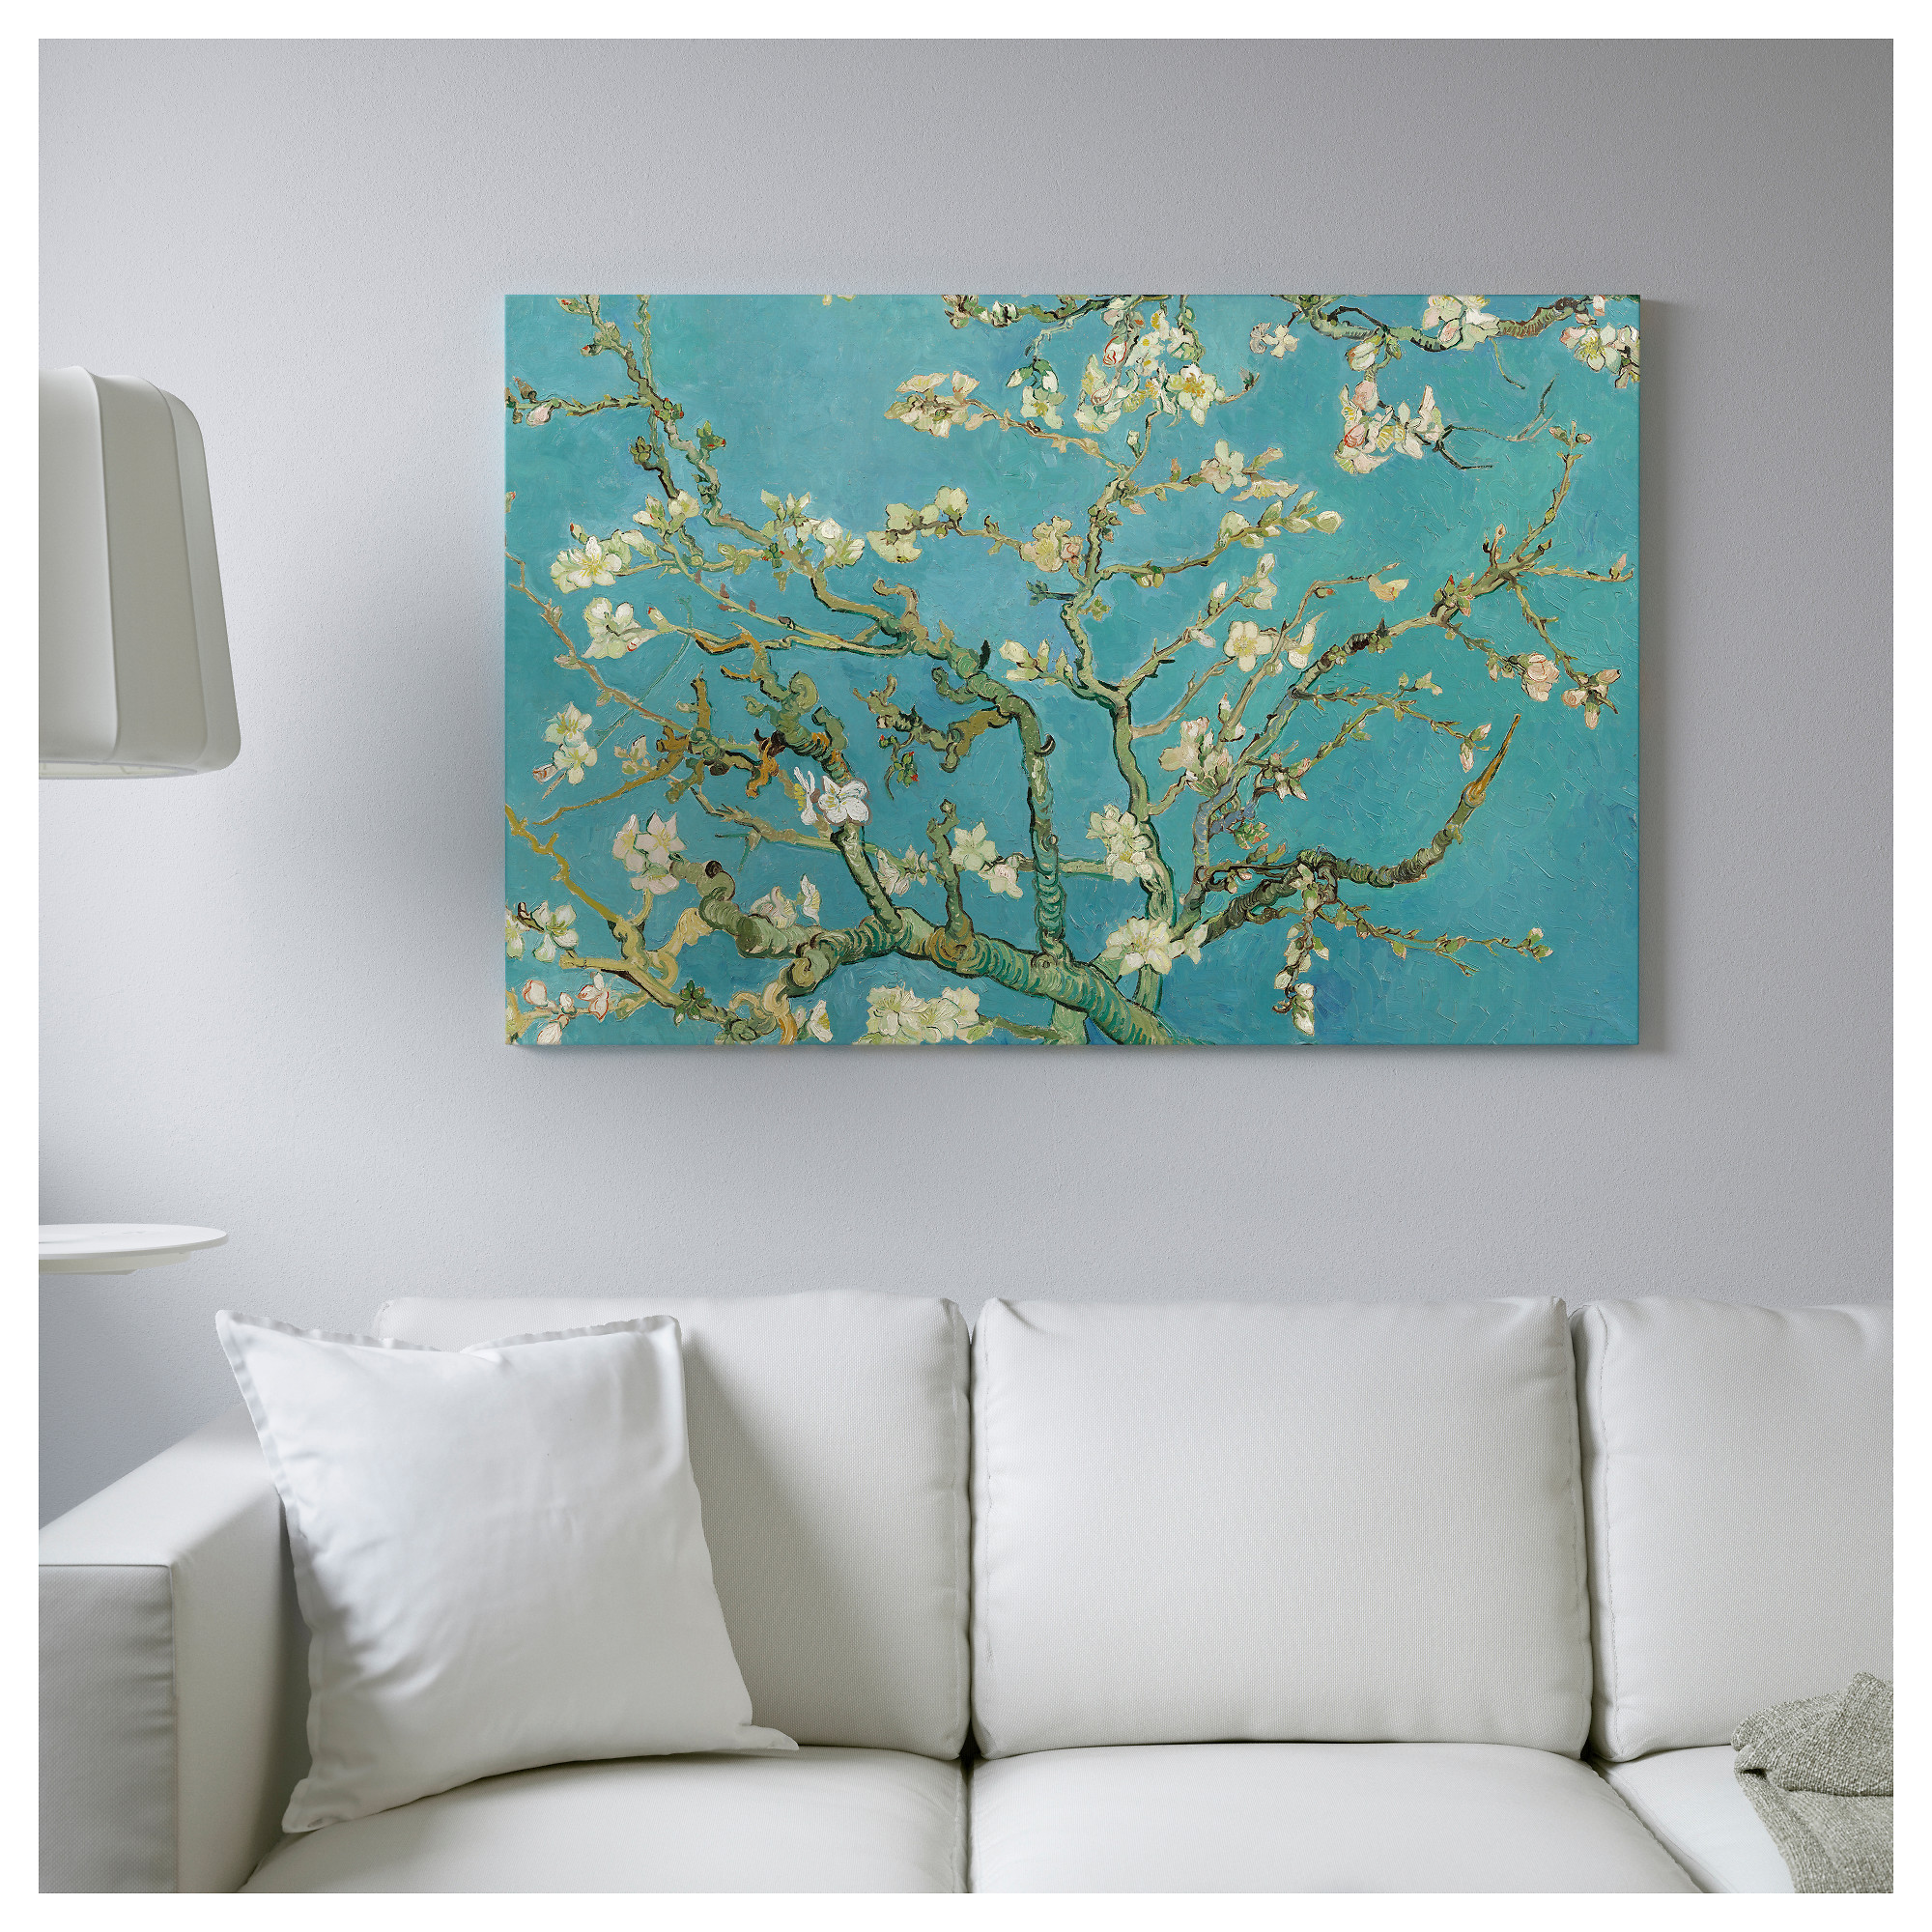 BJÖRKSTA Picture and frame - black - IKEA for Almond Blossom Van Gogh Poster  555kxo